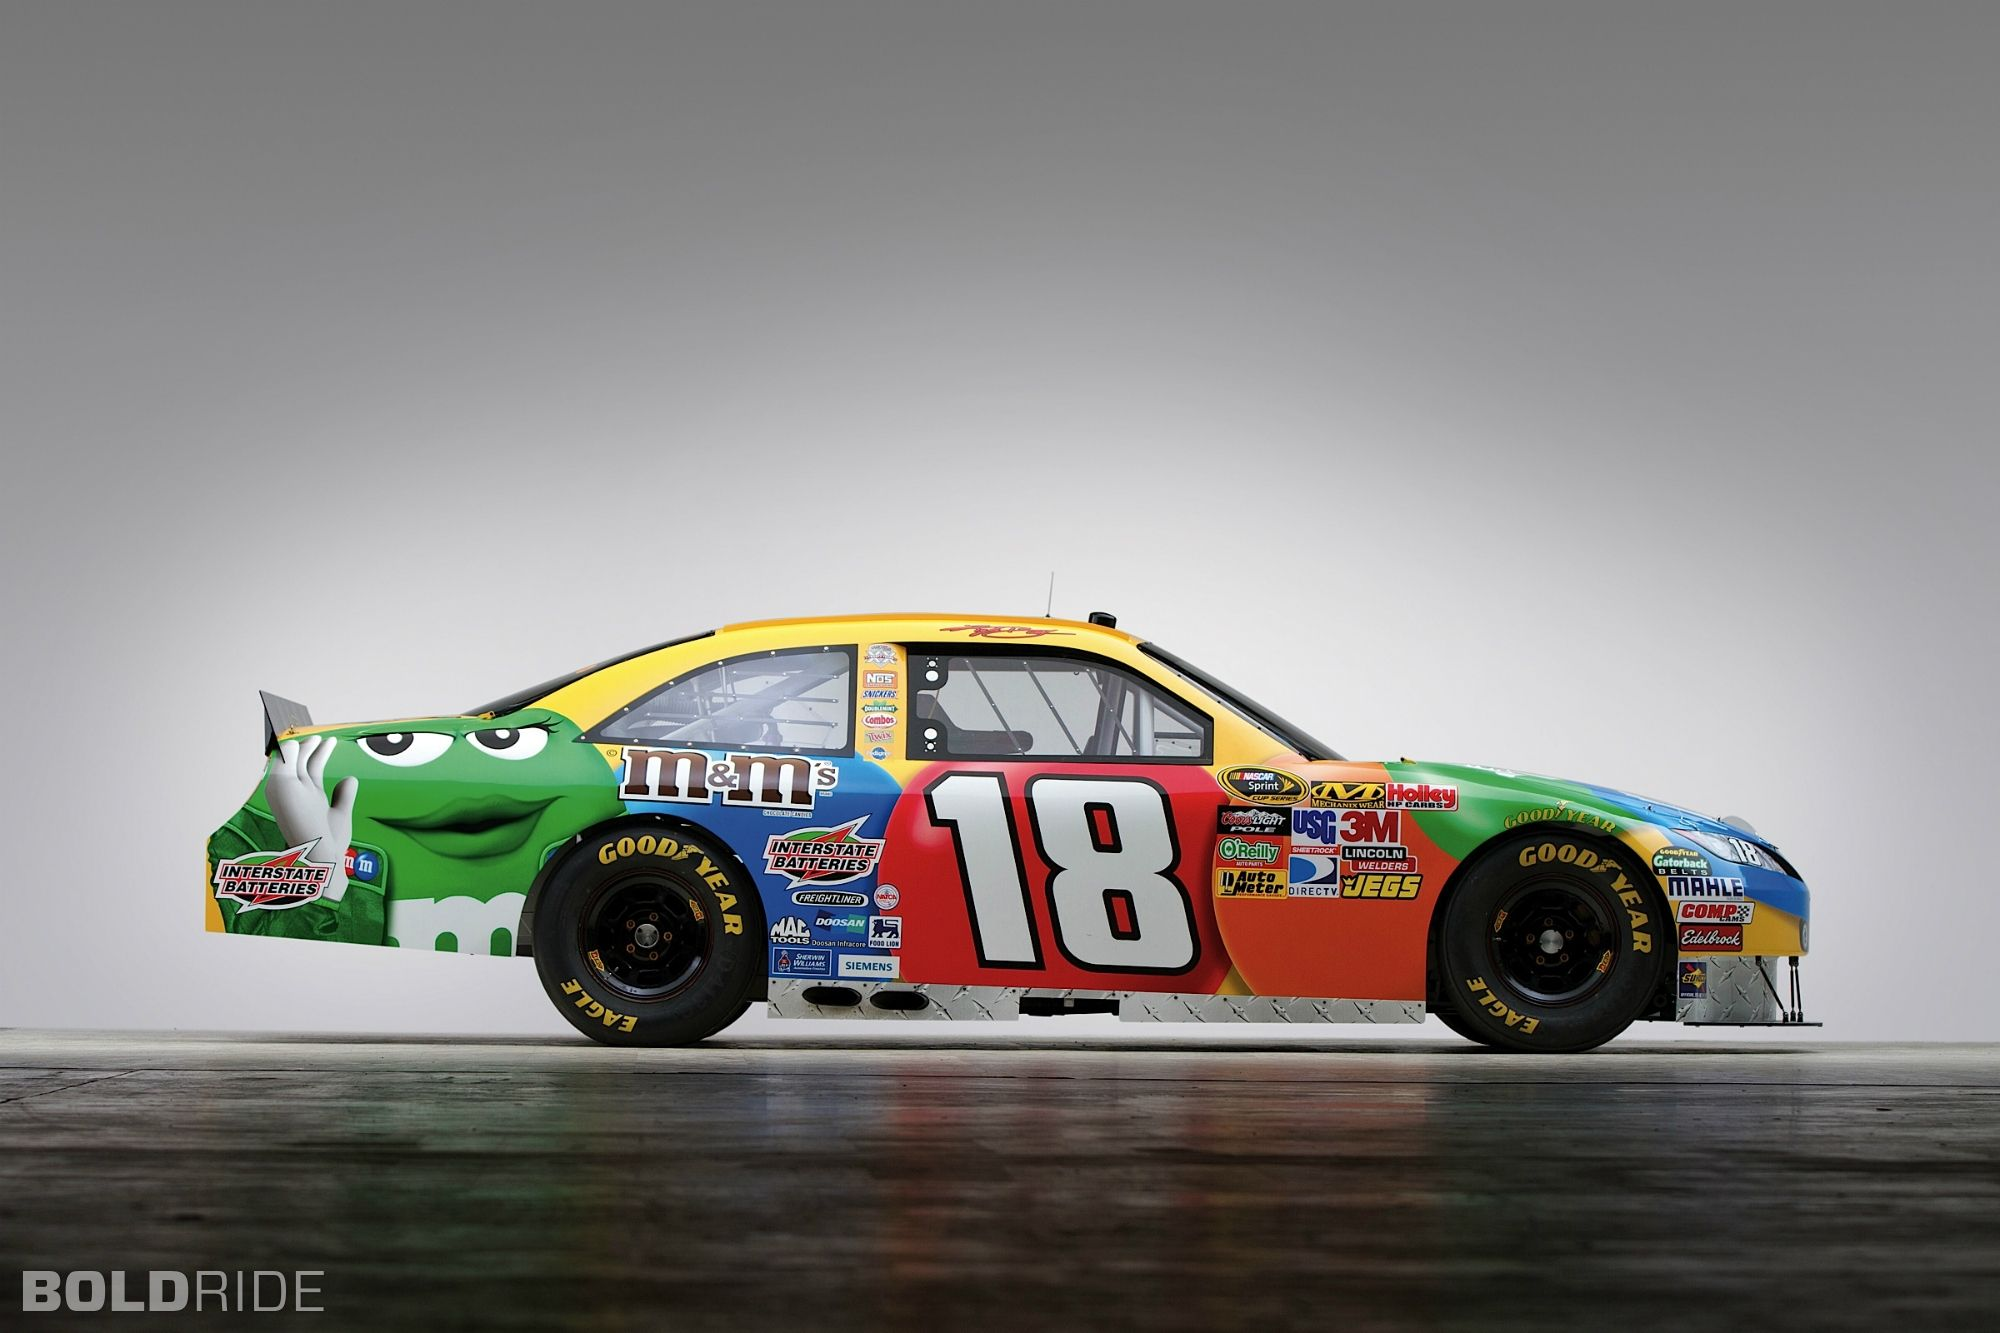 Download Free Toyota Camry Nascar Race Wallpaper Nascar Racing Toyota Camry Camry